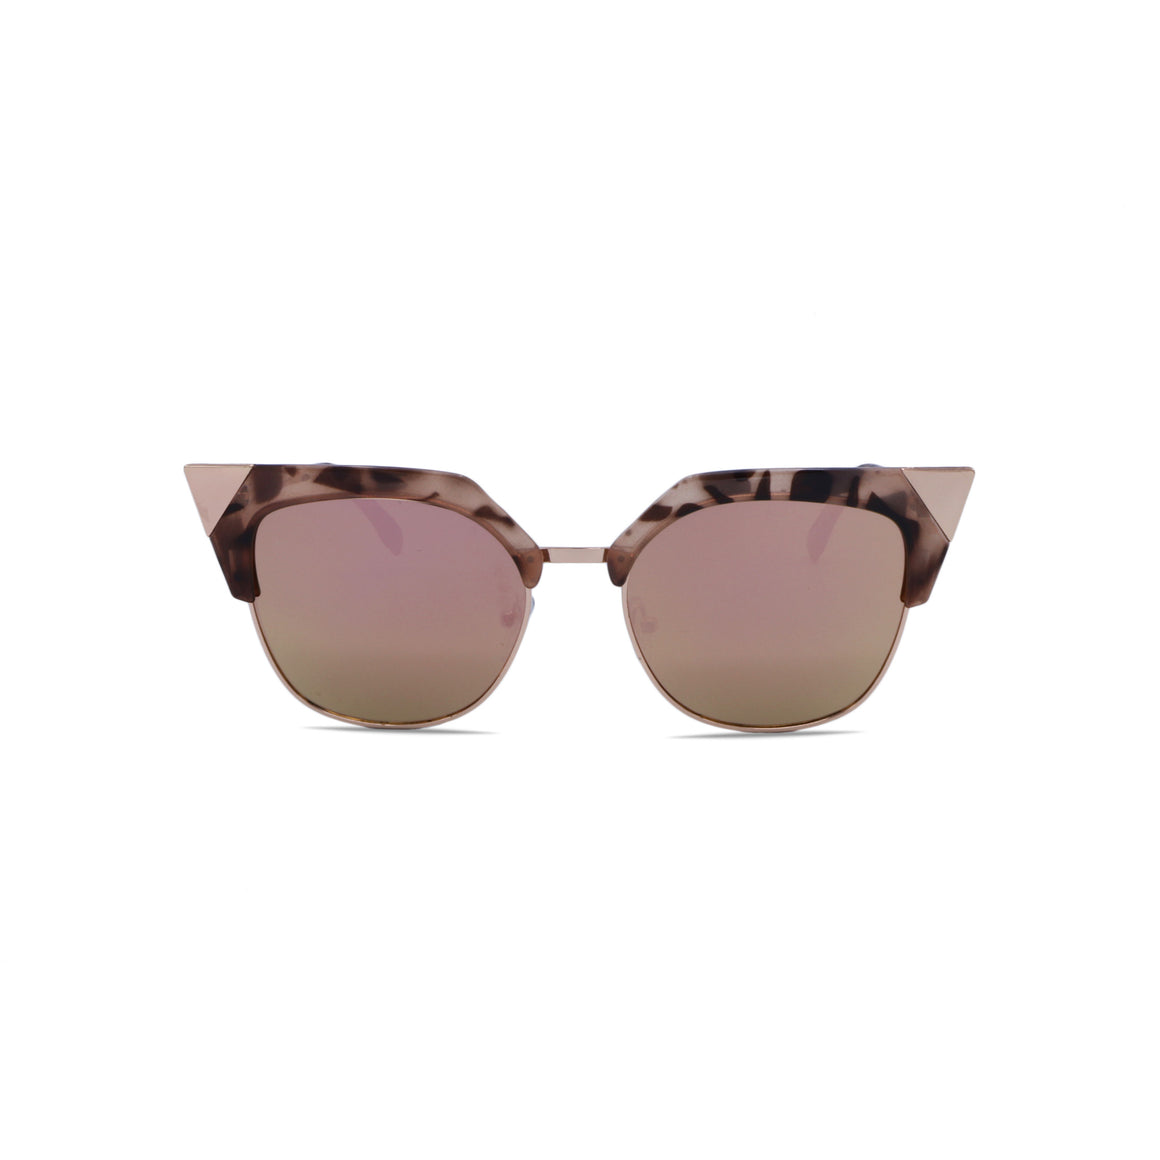 Retro Sunglasses Cat Eye in Mirrored Pink Lens & Leopard Rose Gold Frame